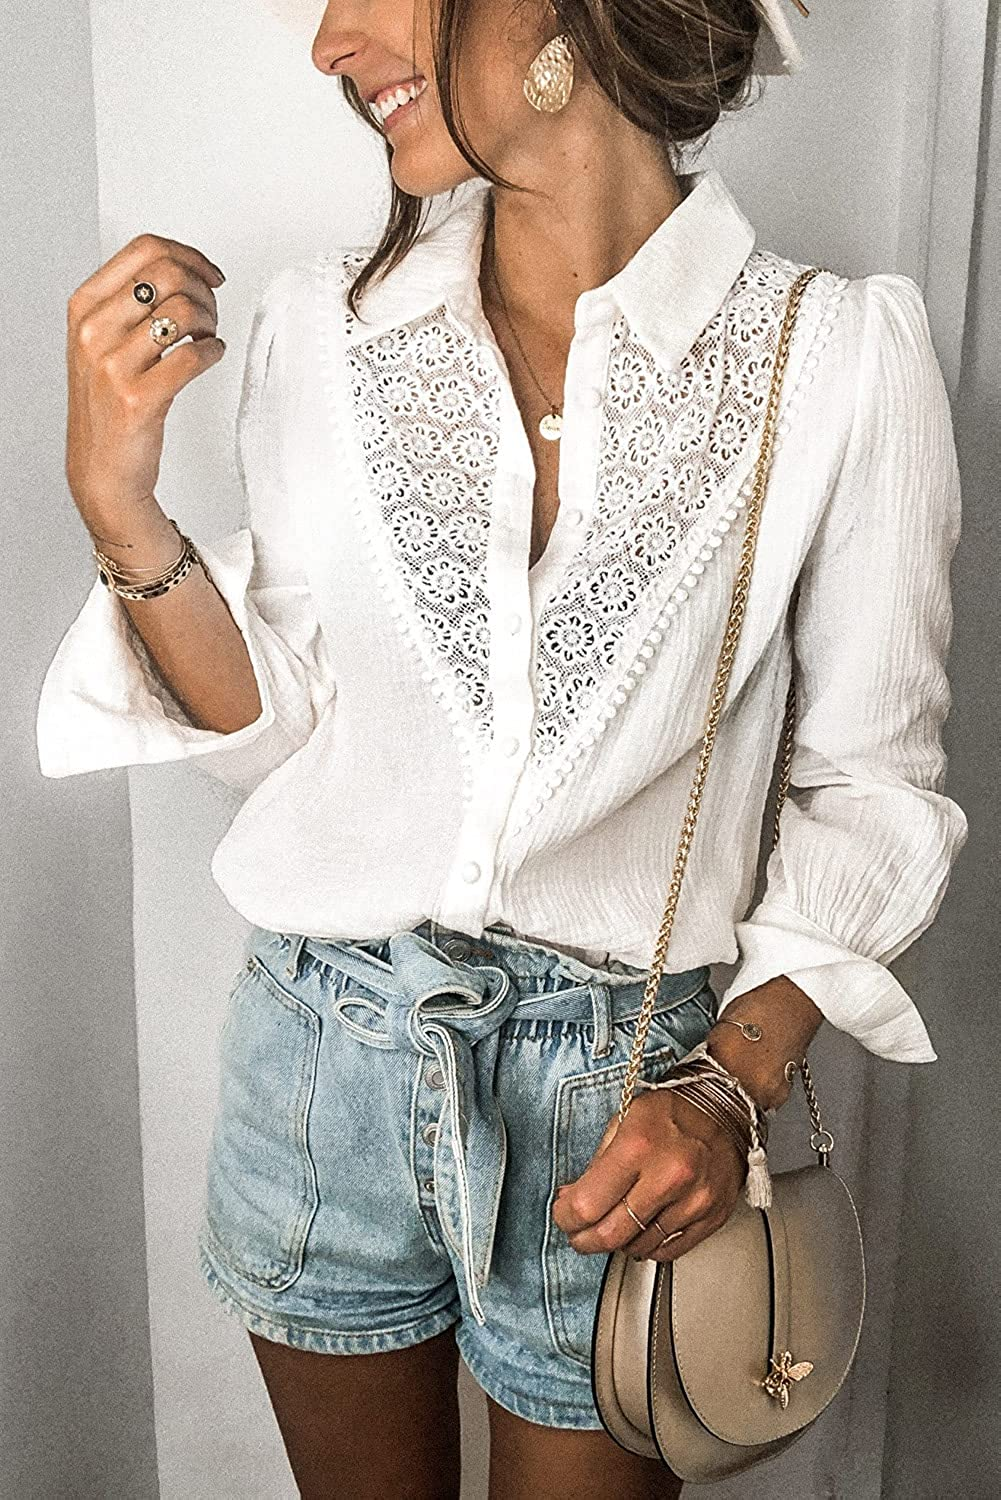 Women Cotton Floral Lace Hollow-Out Splicing Crinkled Shirt V Neck Lace Button Down Shirts Tops Loose Blouses